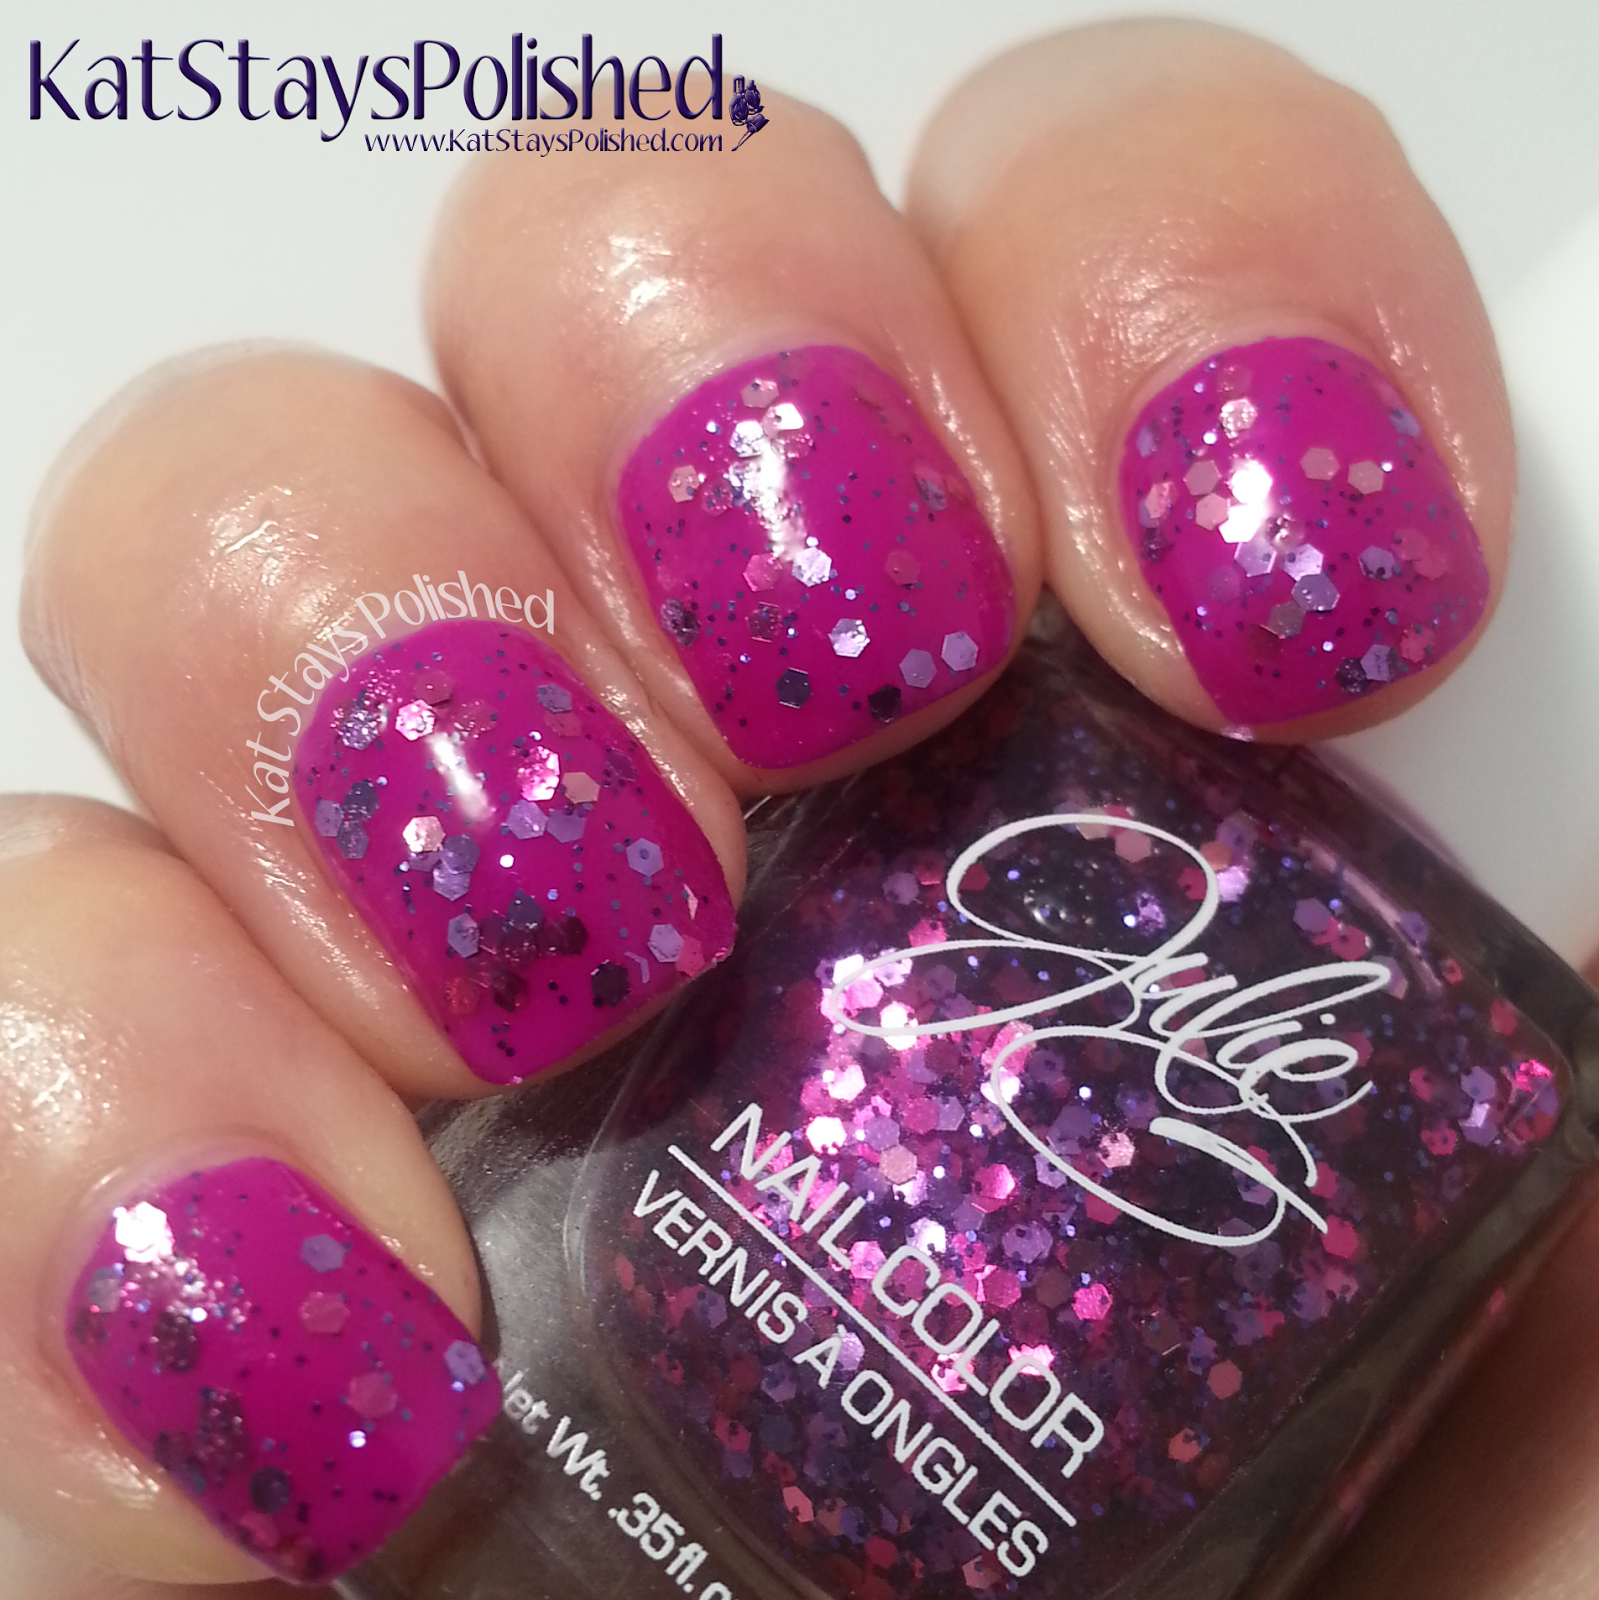 JulieG Mardi Gras Collection - Trinket | Kat Stays Polished